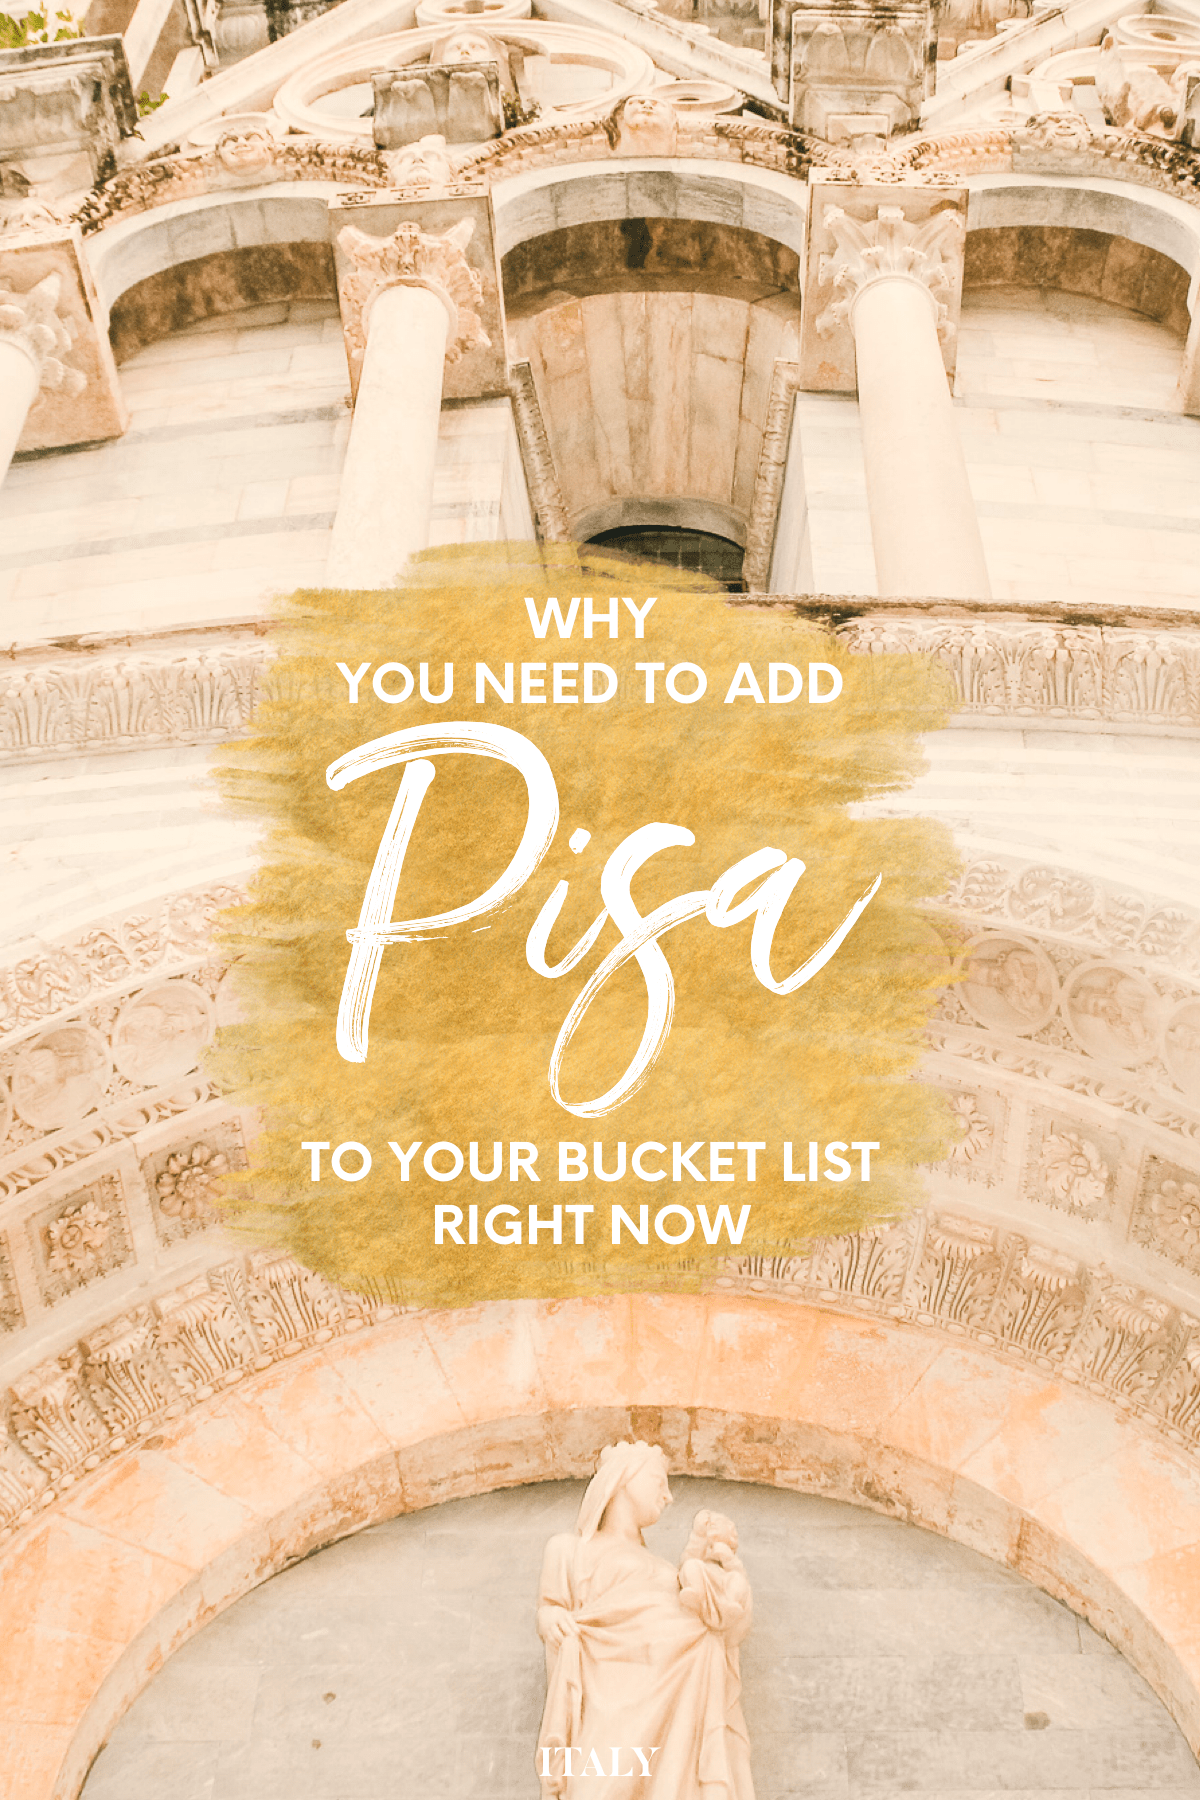 Why You Need To Add Pisa To Your Bucket List